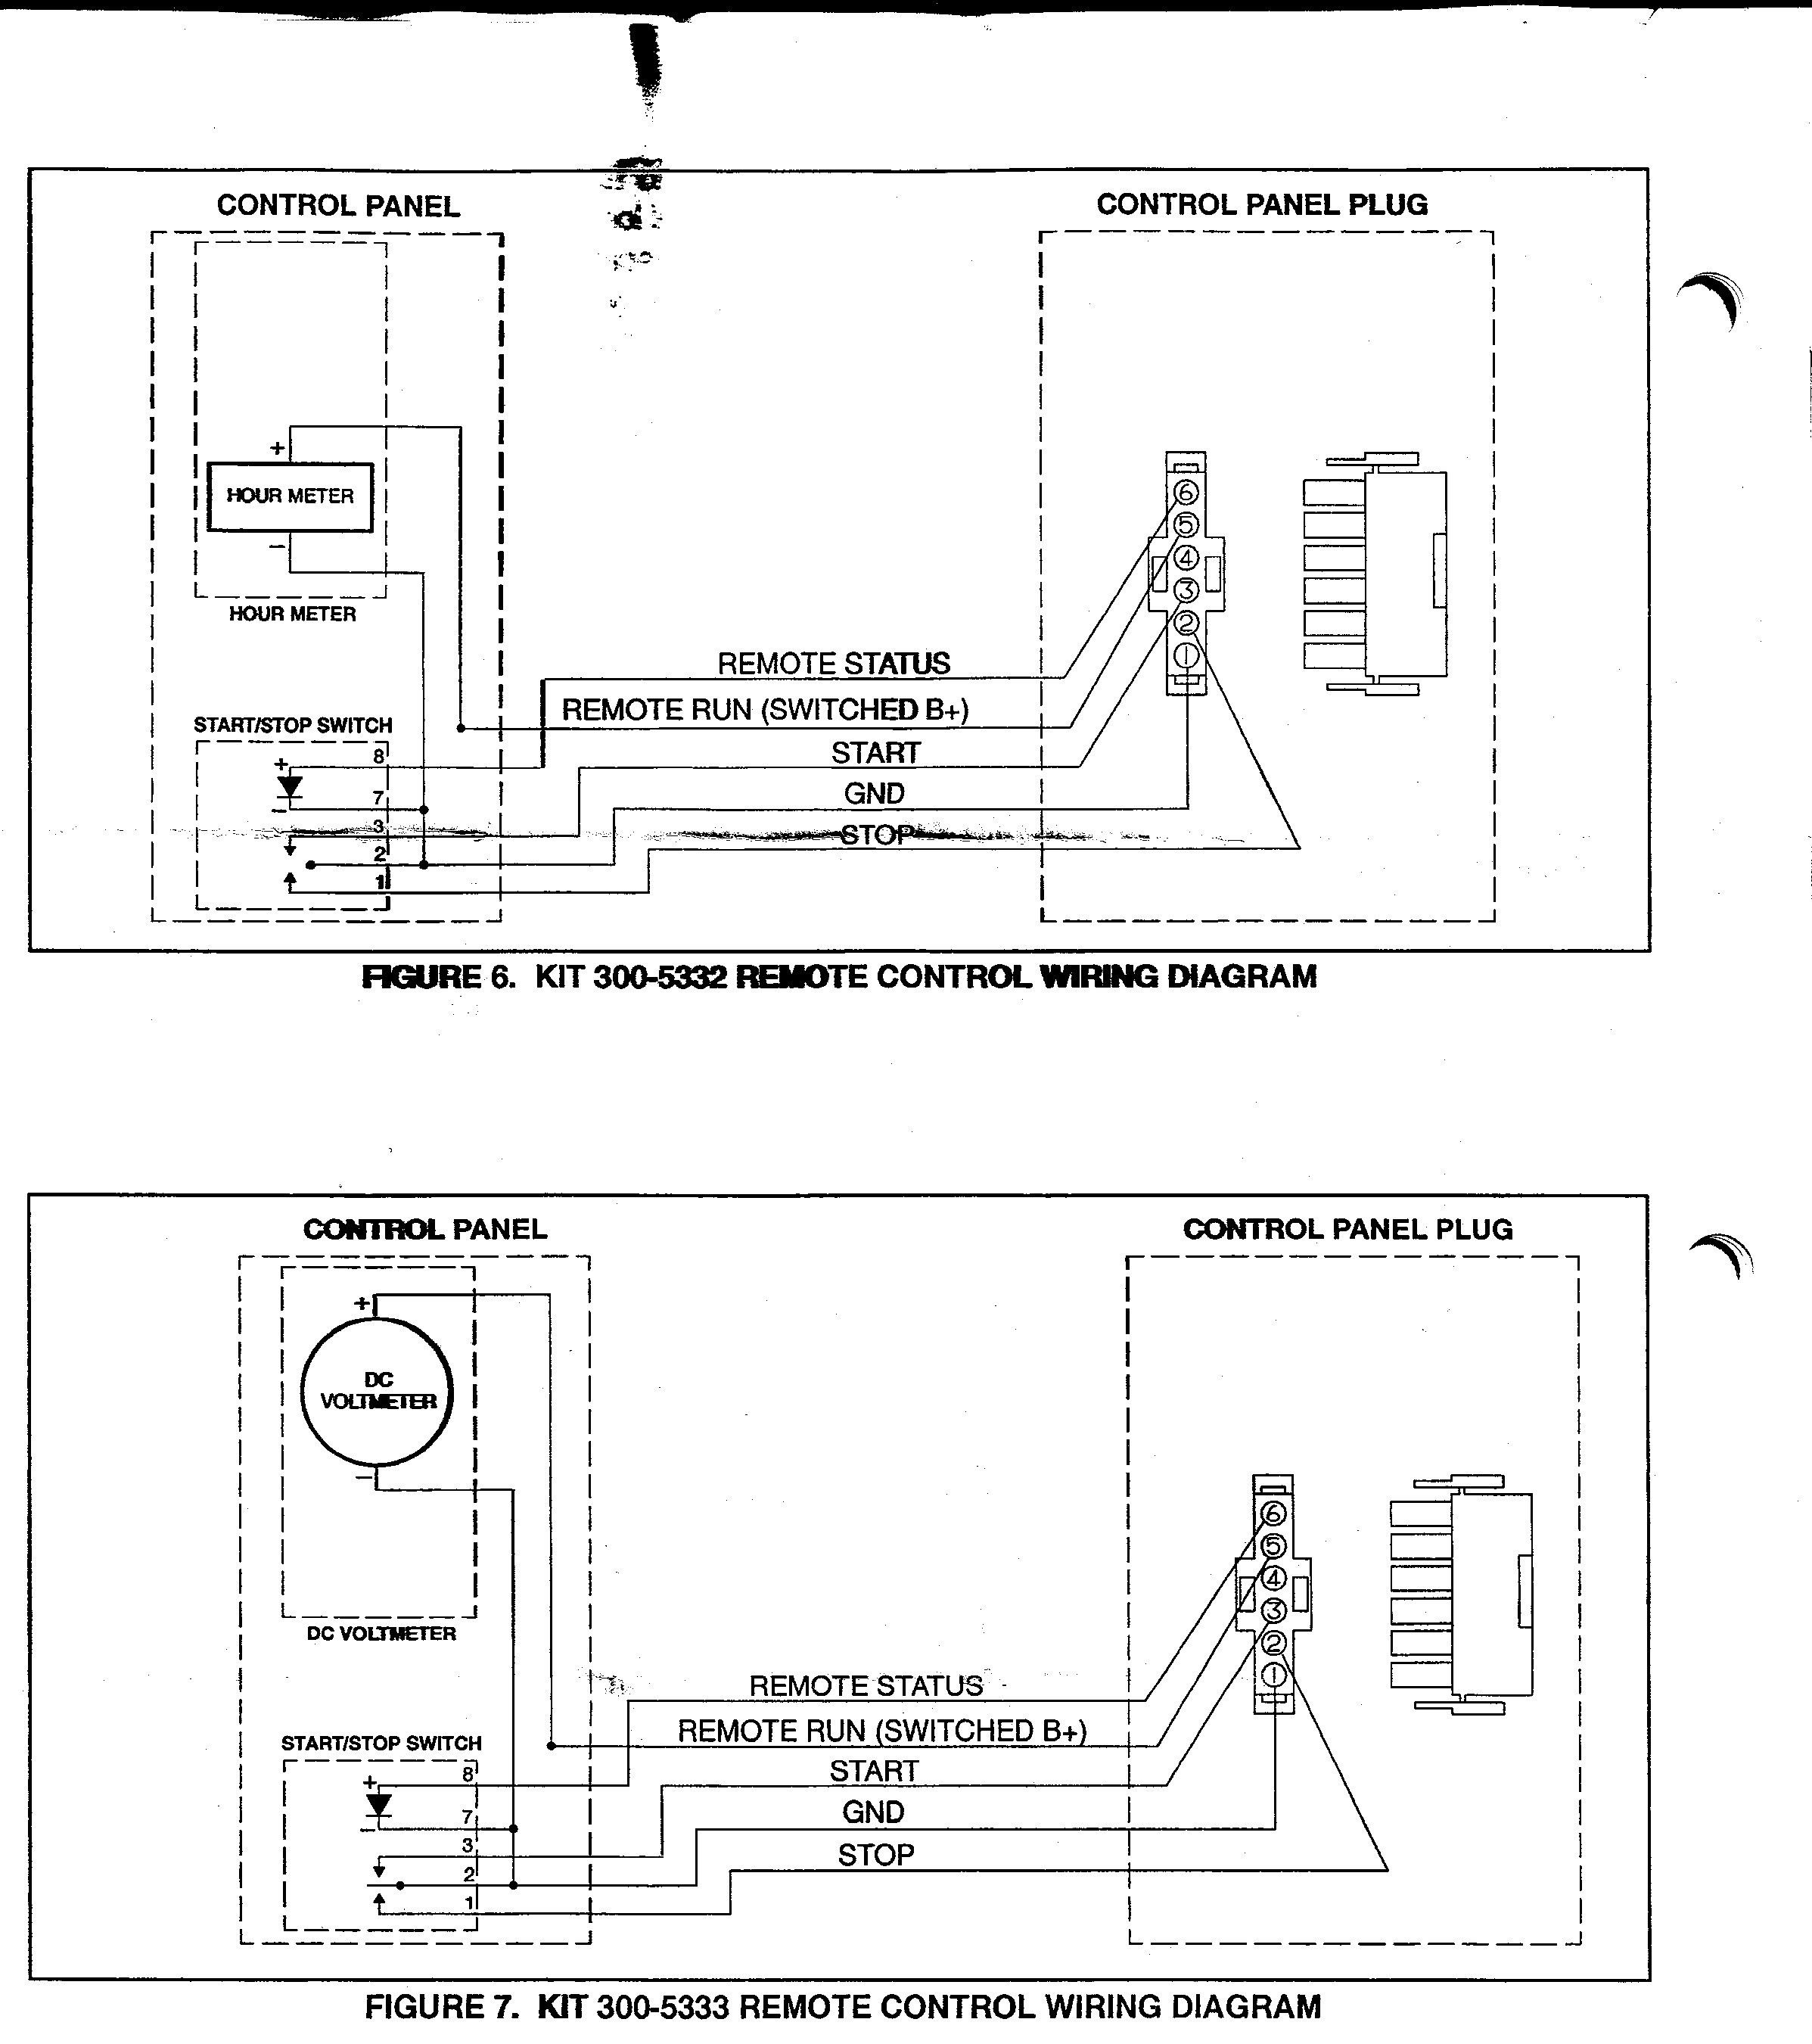 Onan Rv Generator Wiring Diagram in 2021 | Diagram, Wire, Onan | Wiring Schematic For Onan Engine |  | Pinterest